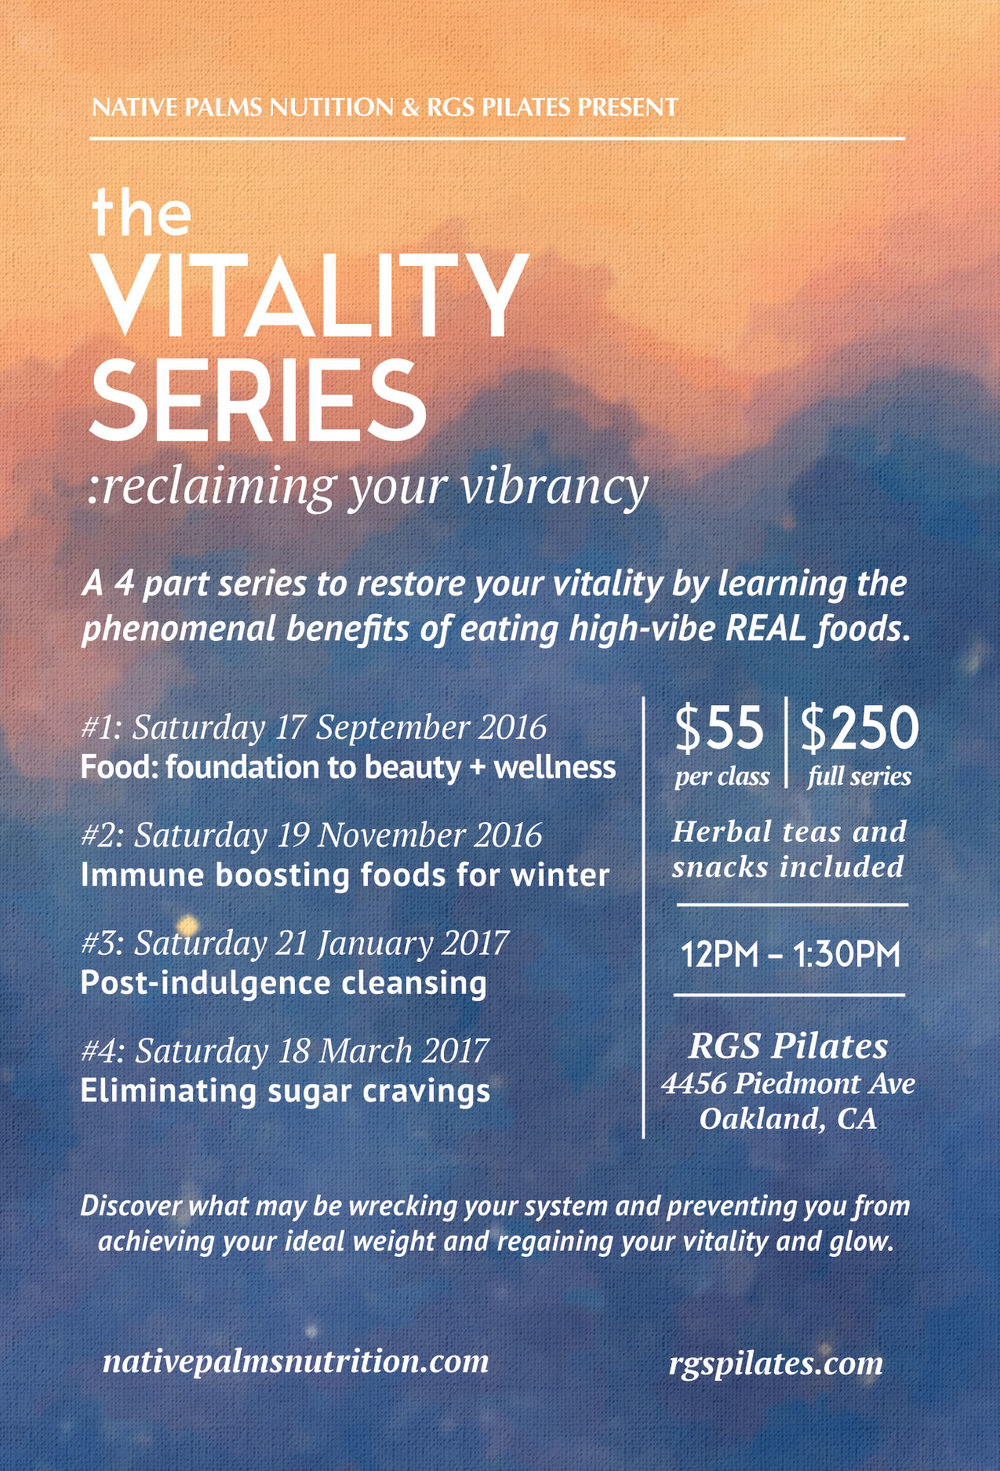 vitalityseries